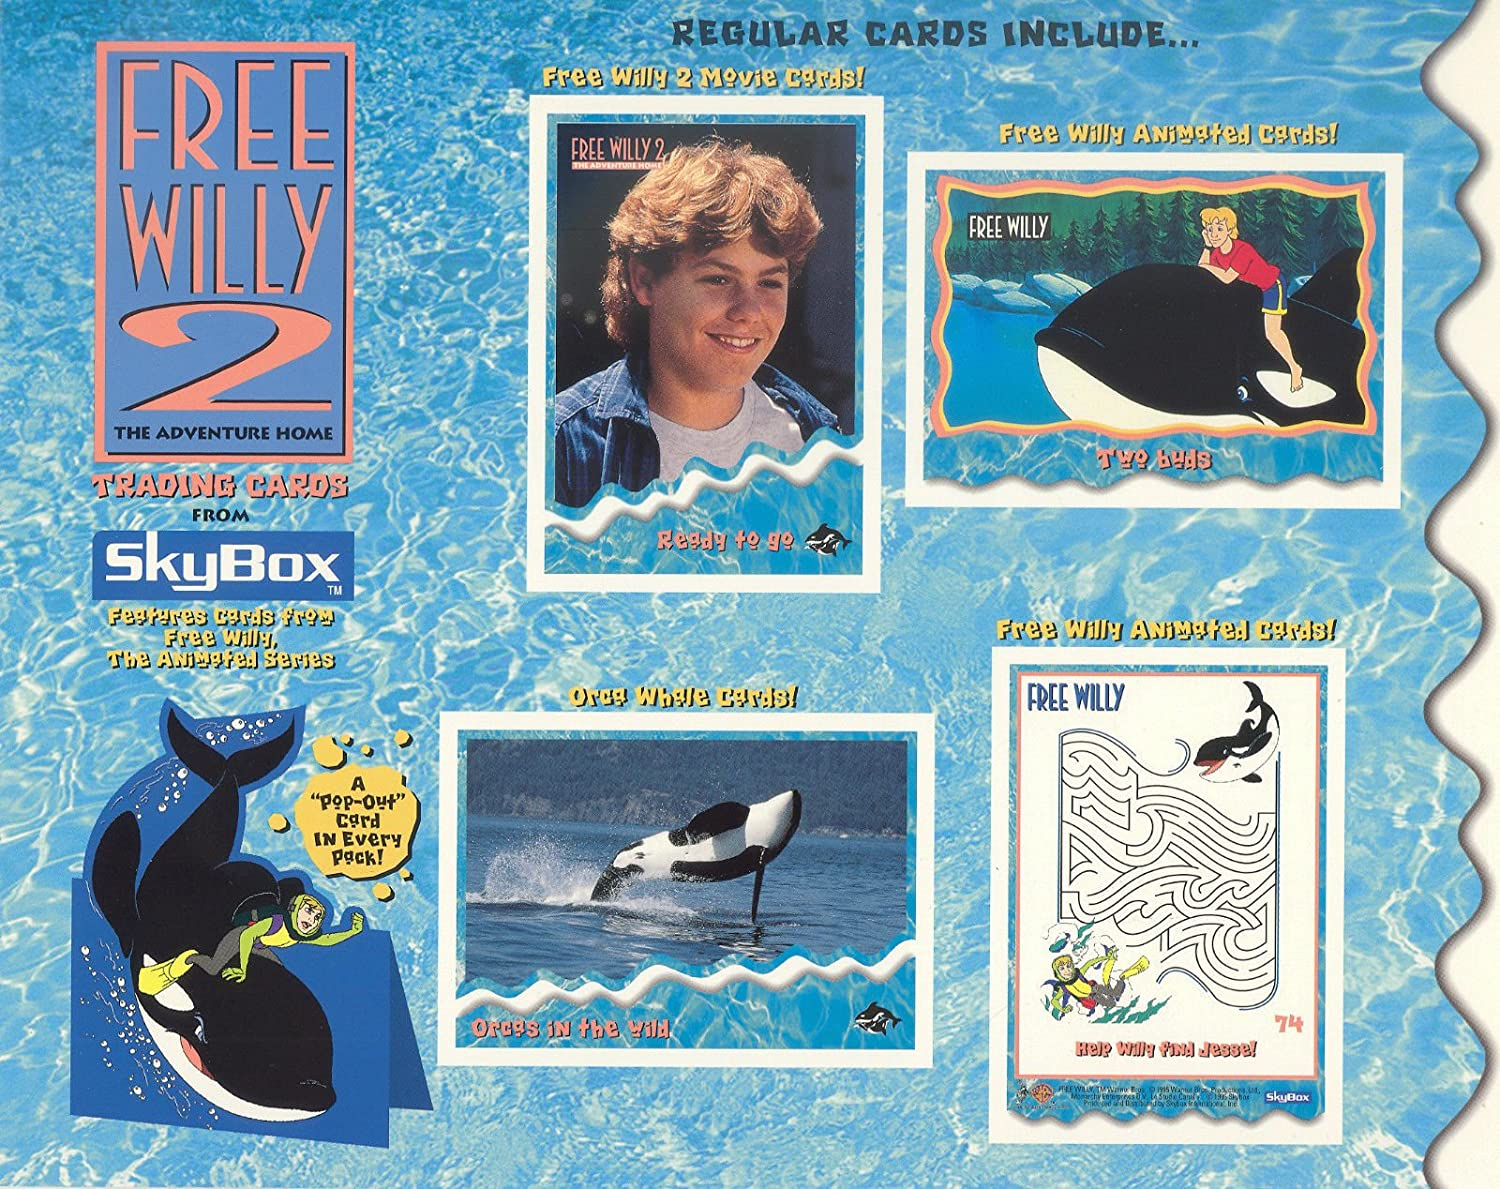 FREE WILLY 2 THE ADVENTURE HOME 1995 SKYBOX UNCUT PROMO CARD SHEET